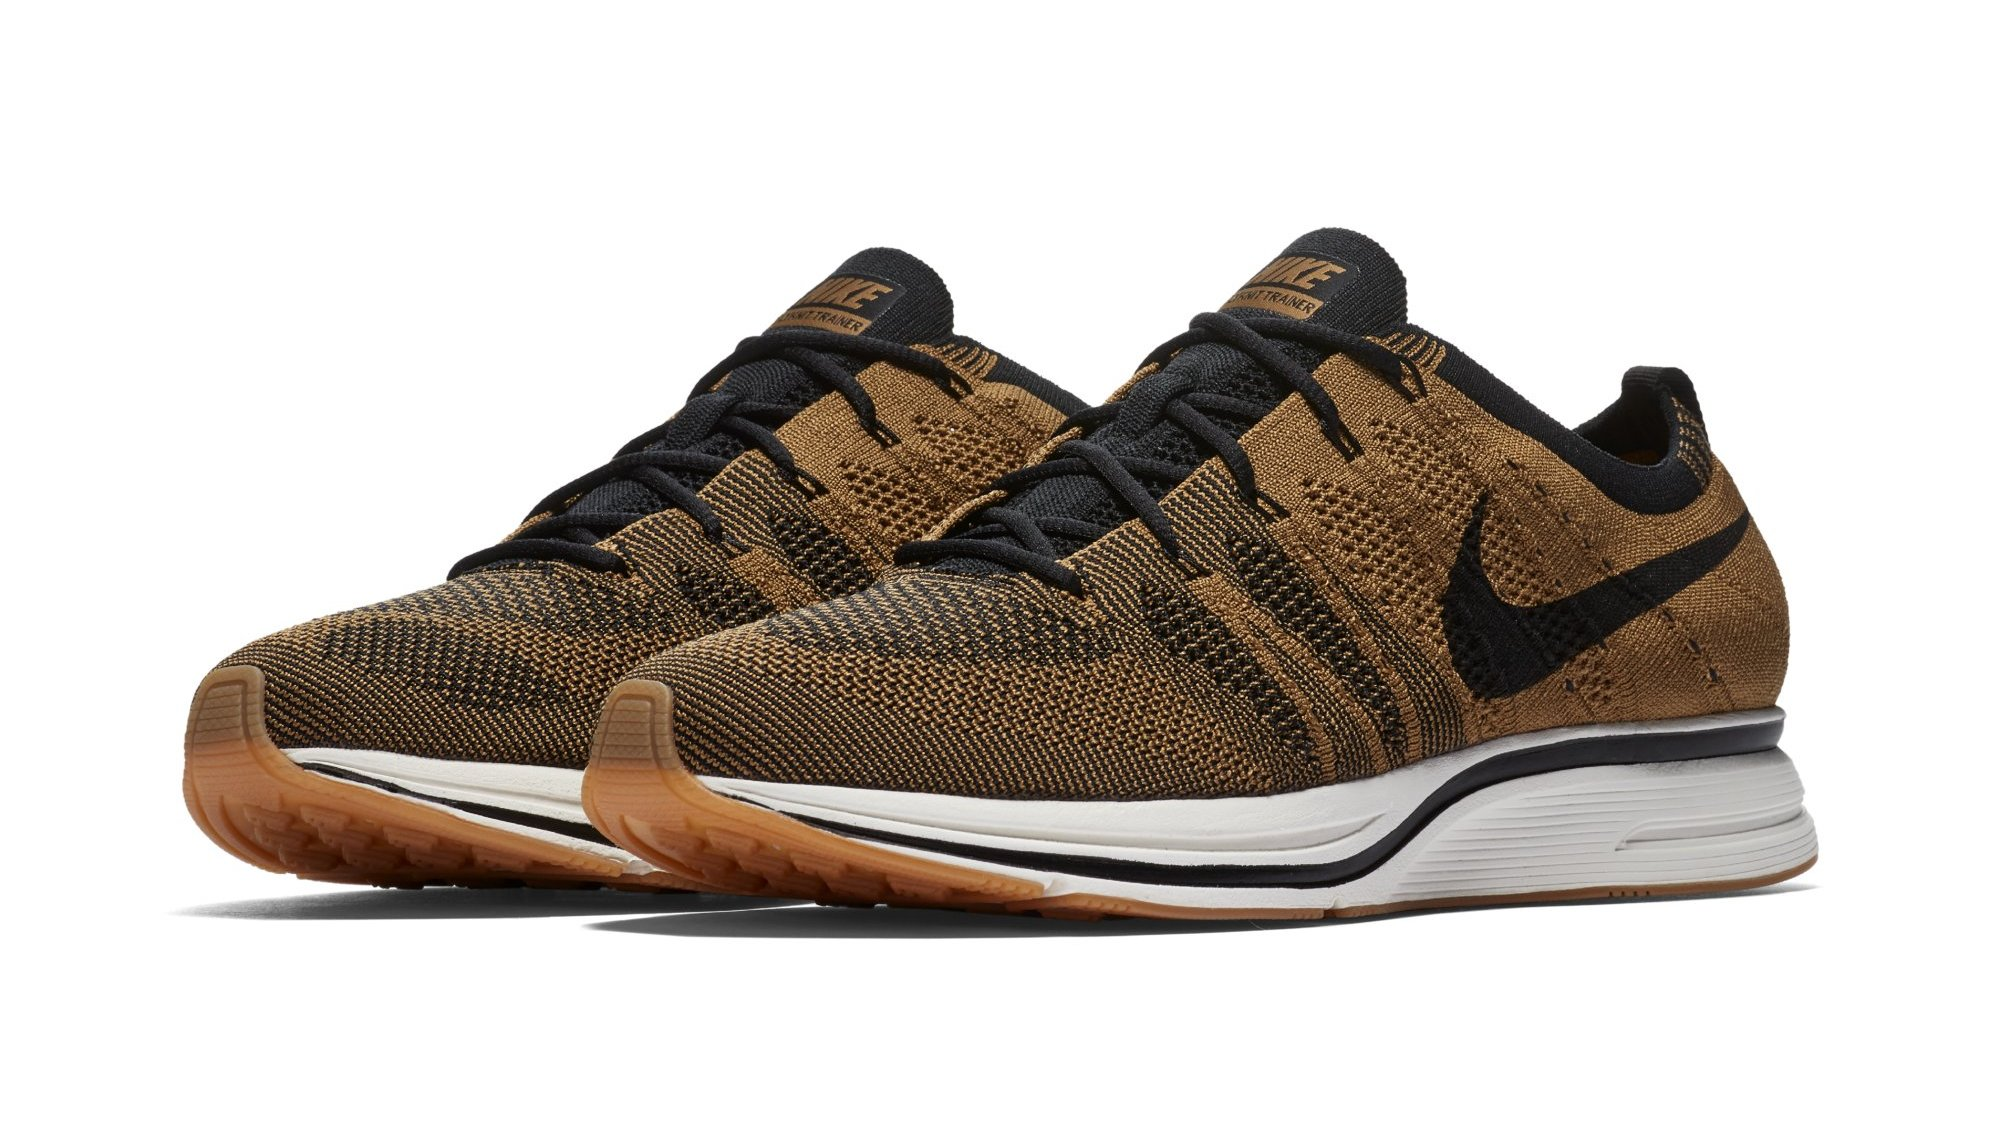 56d23fa013c66 Nike Flyknit Trainer  Golden Beige Black Gum Light Brown  AH8396-203 ...